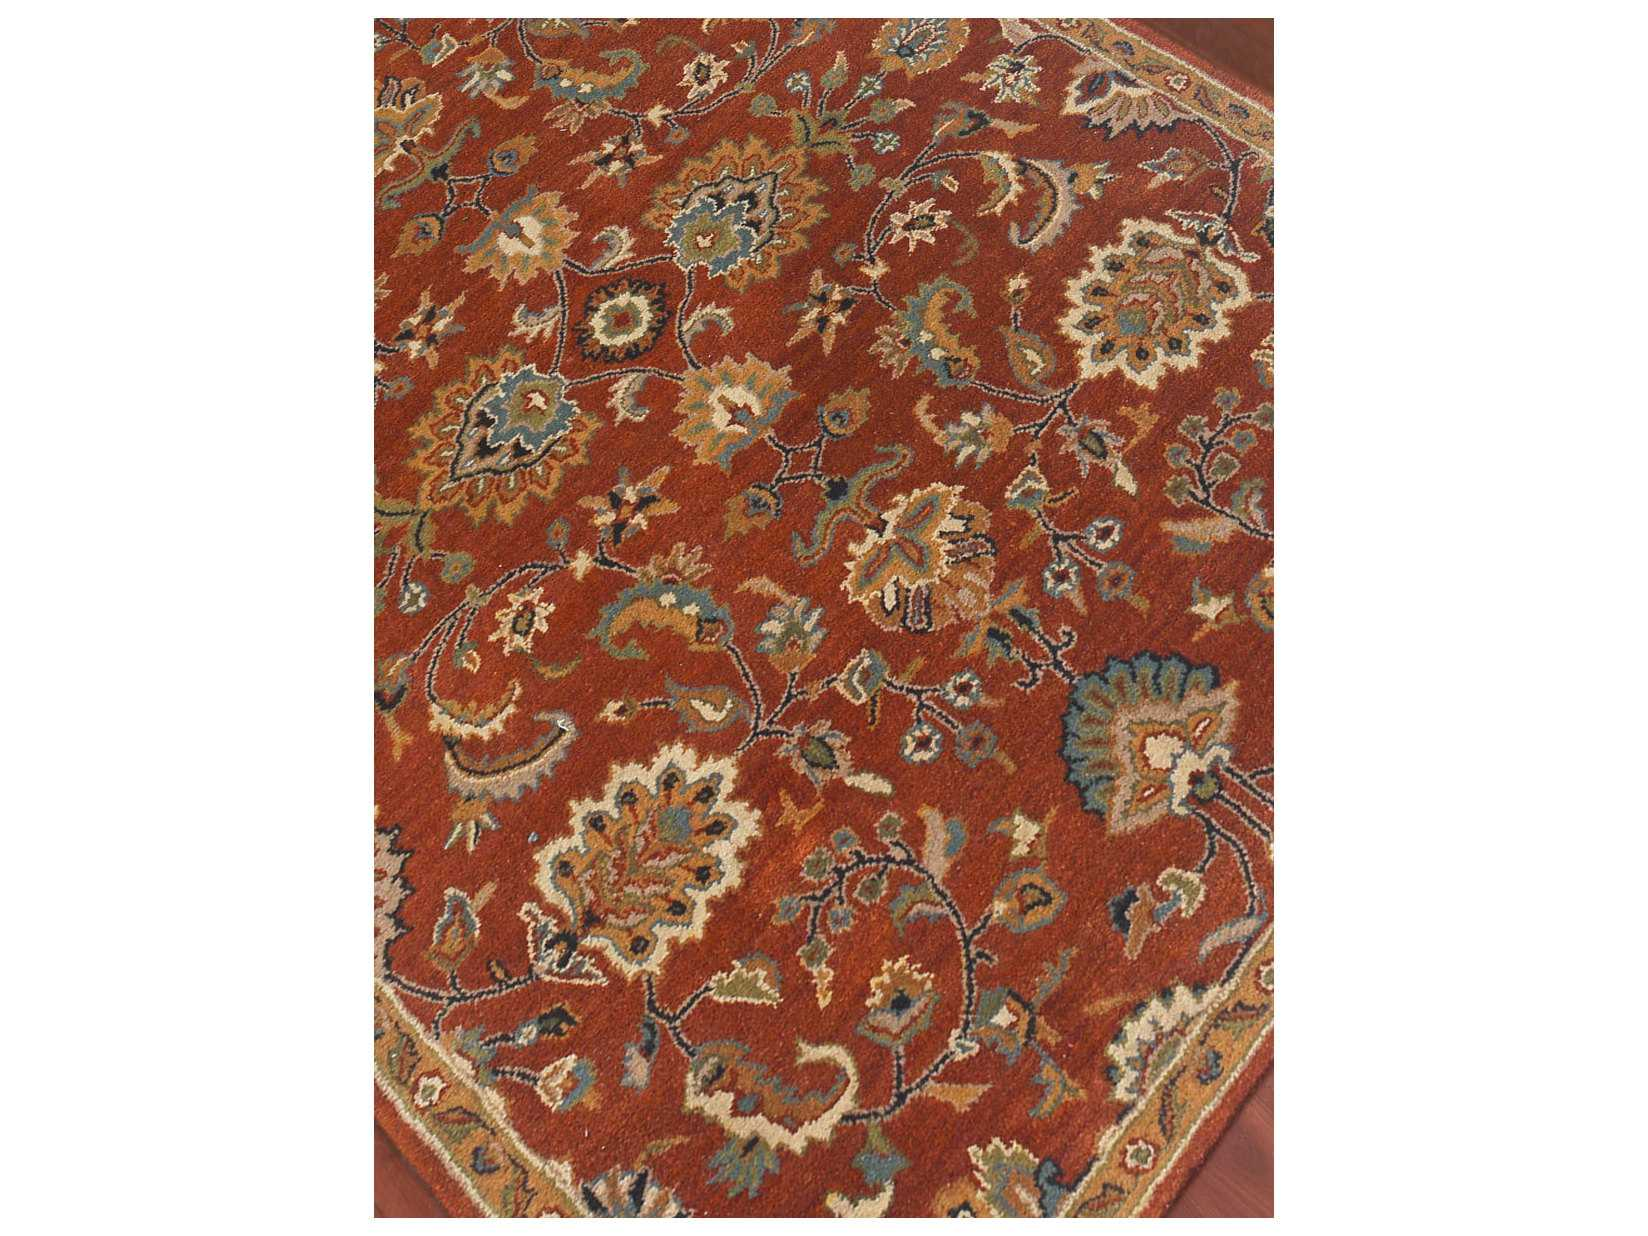 Amer Rugs Liberty Rust Rectangular Area Rug Arlib4sa